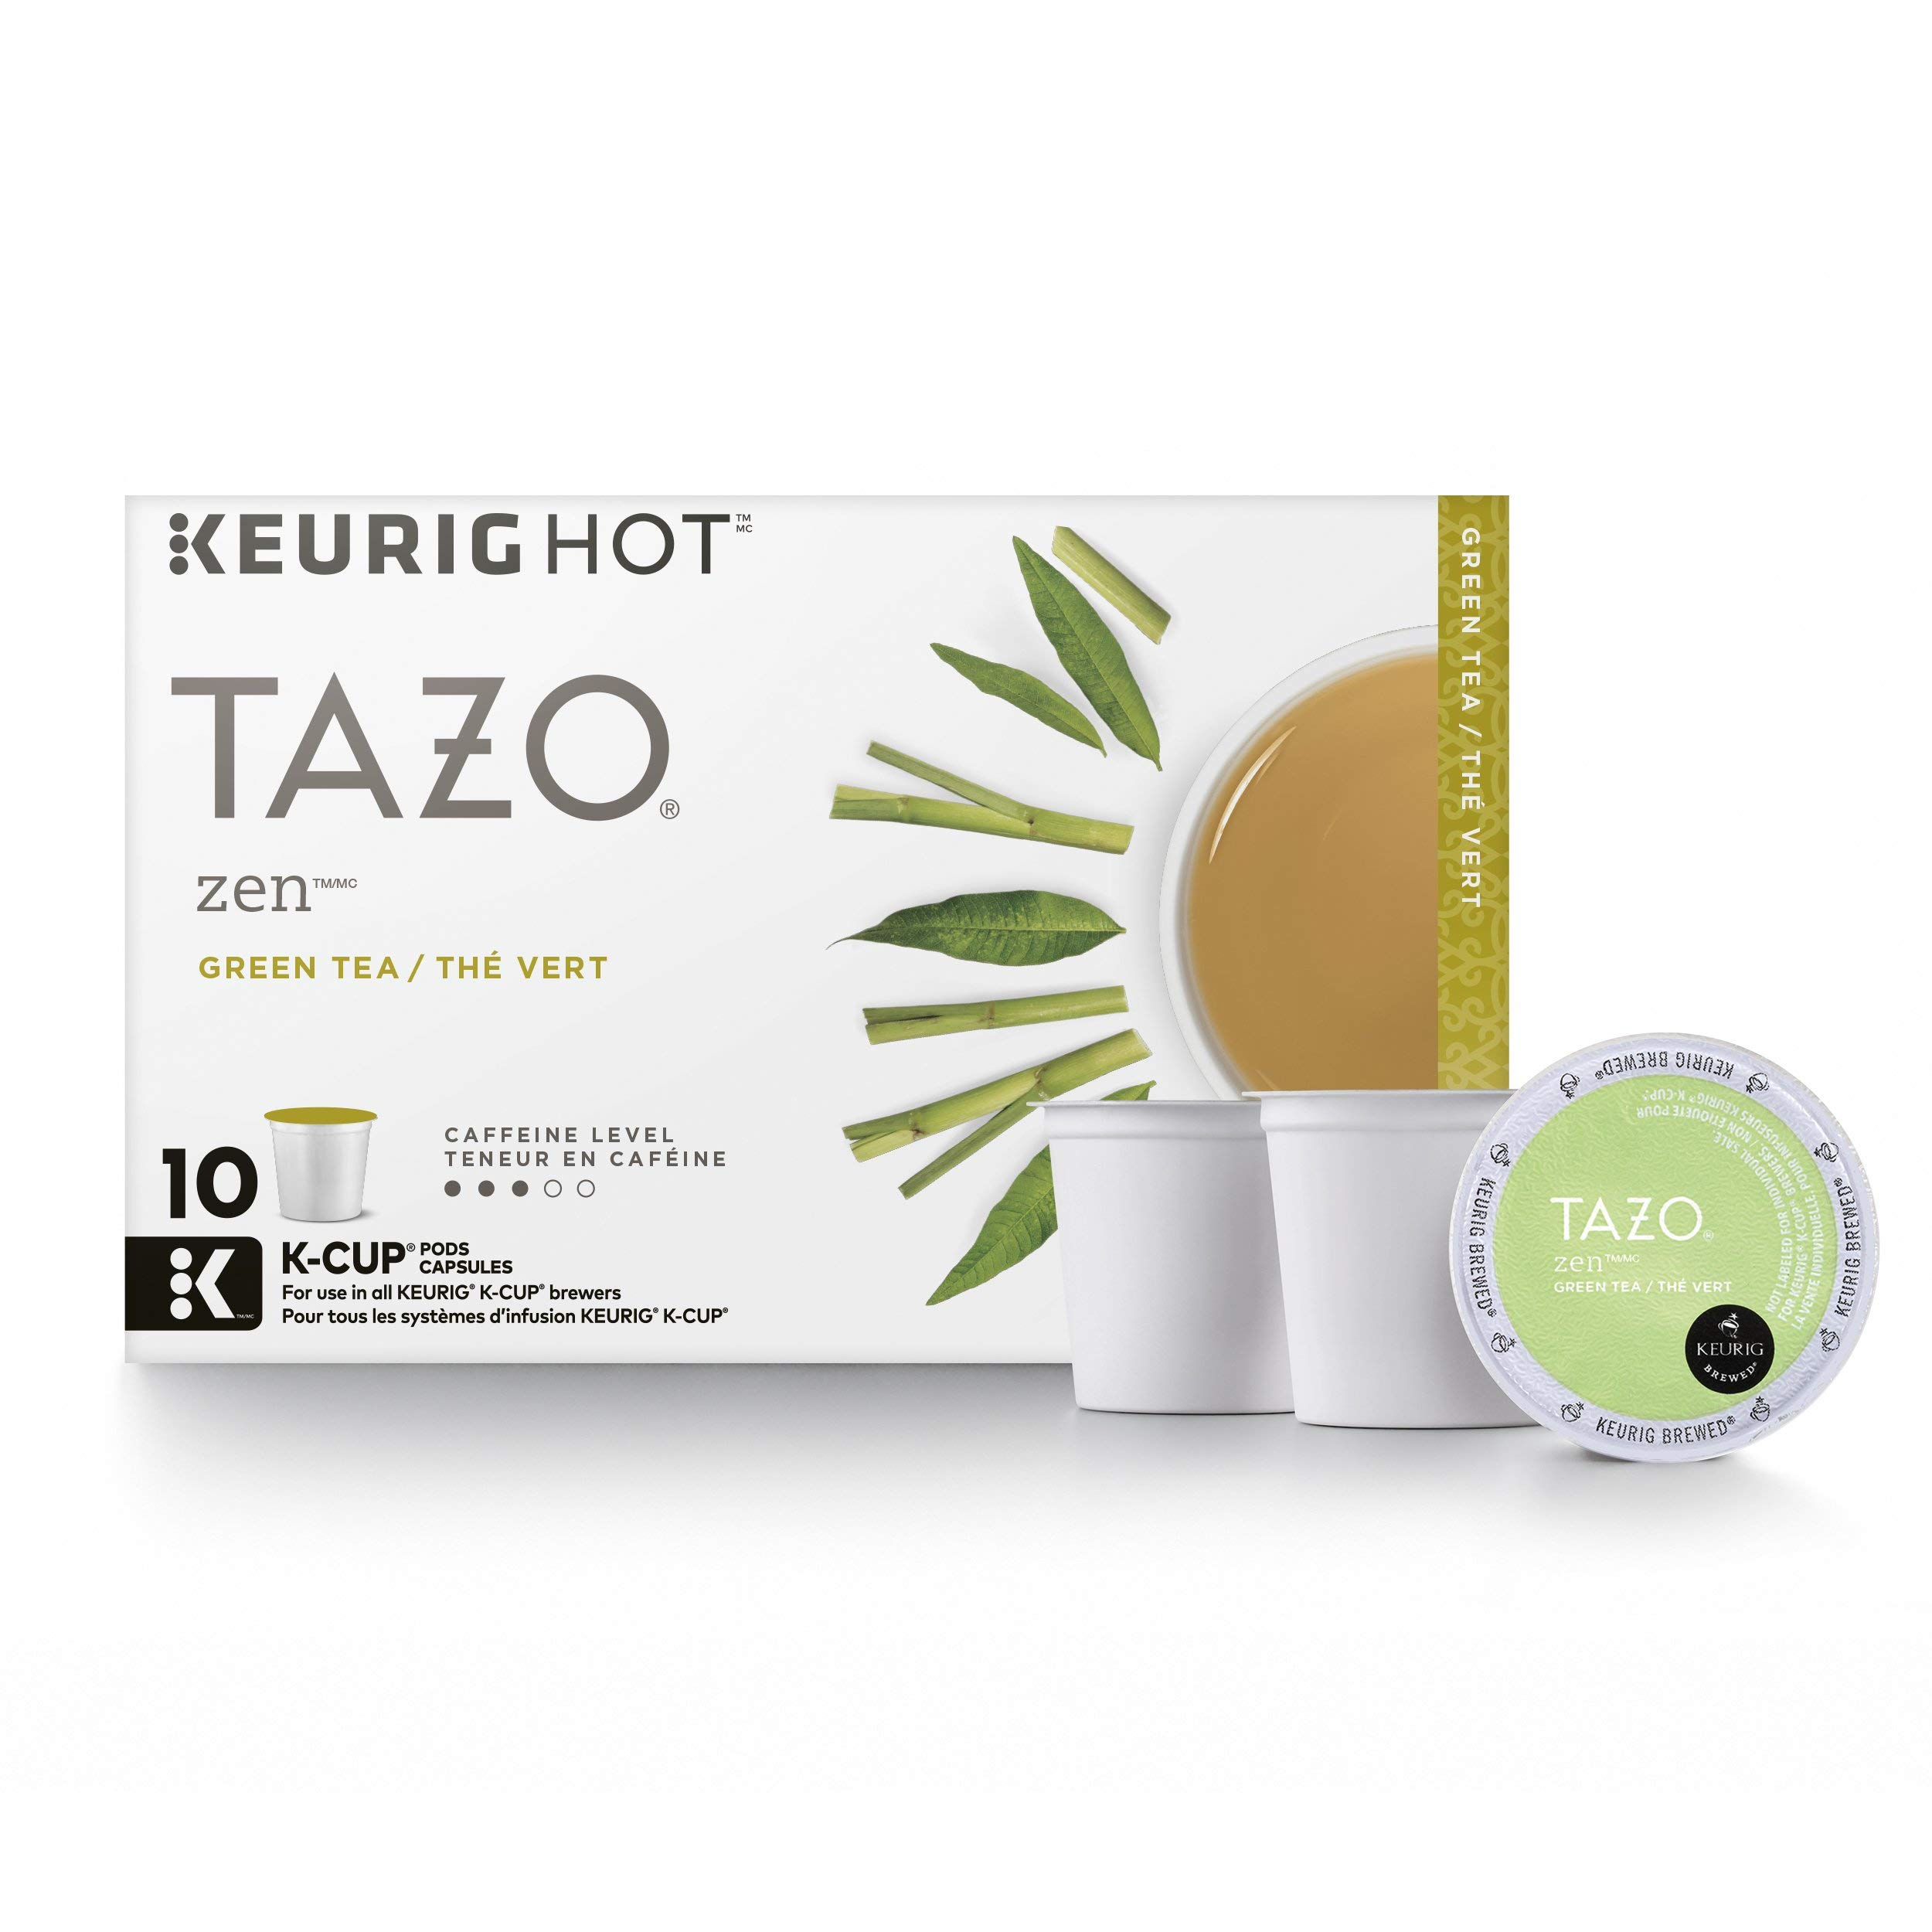 Tazo Zen Green Tea K-Cup, 10 ct (Pack of 6) by TAZO (Image #3)